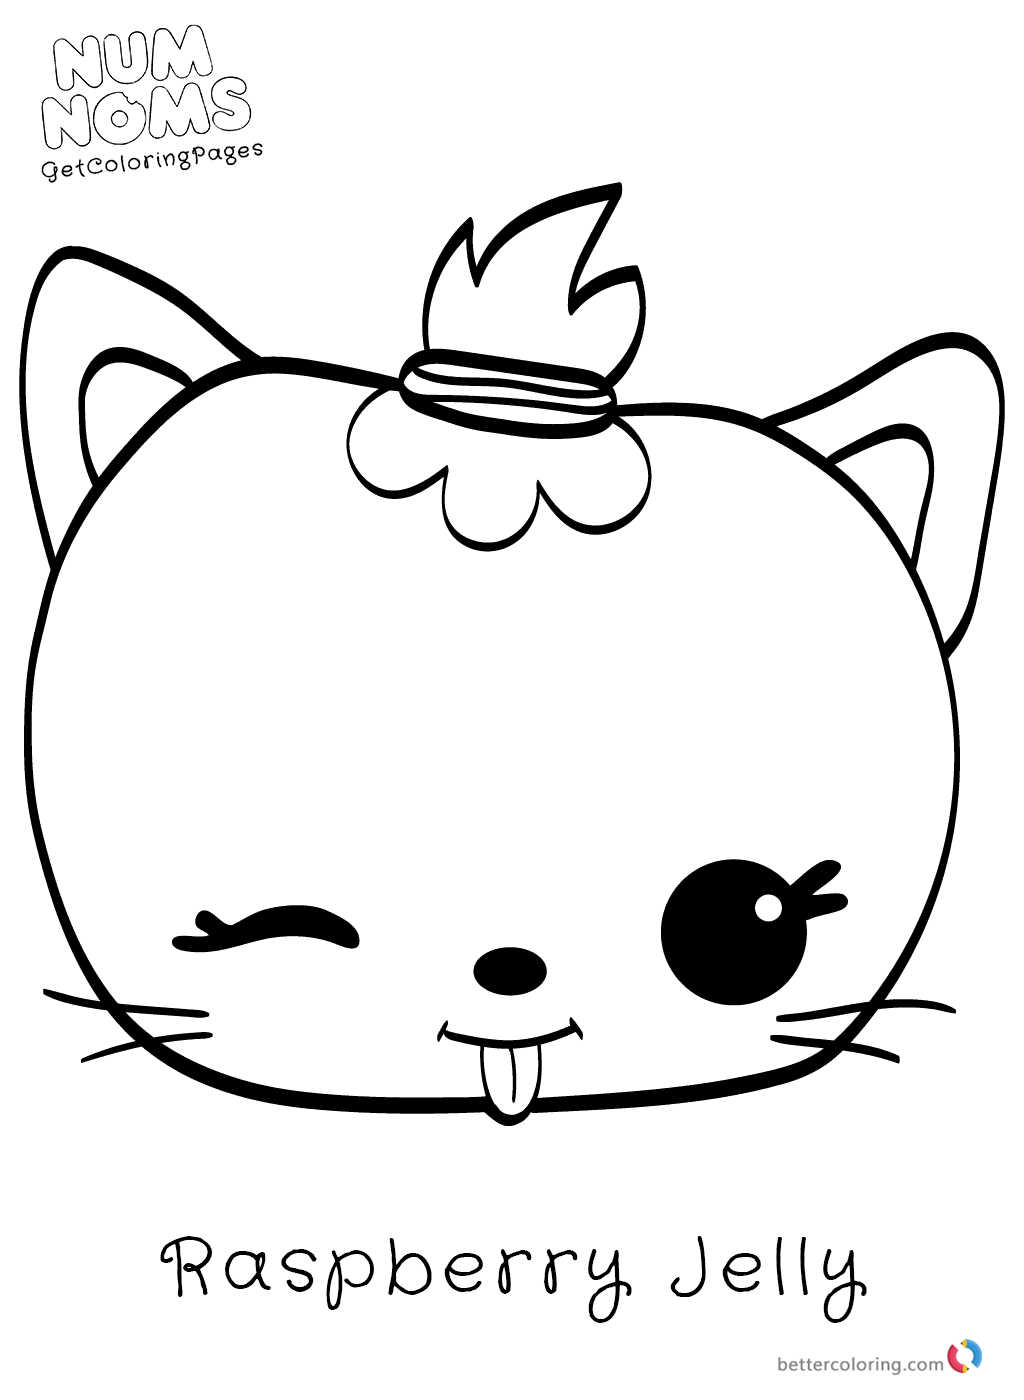 Num Noms Coloring Page Raspberry Jelly Printable